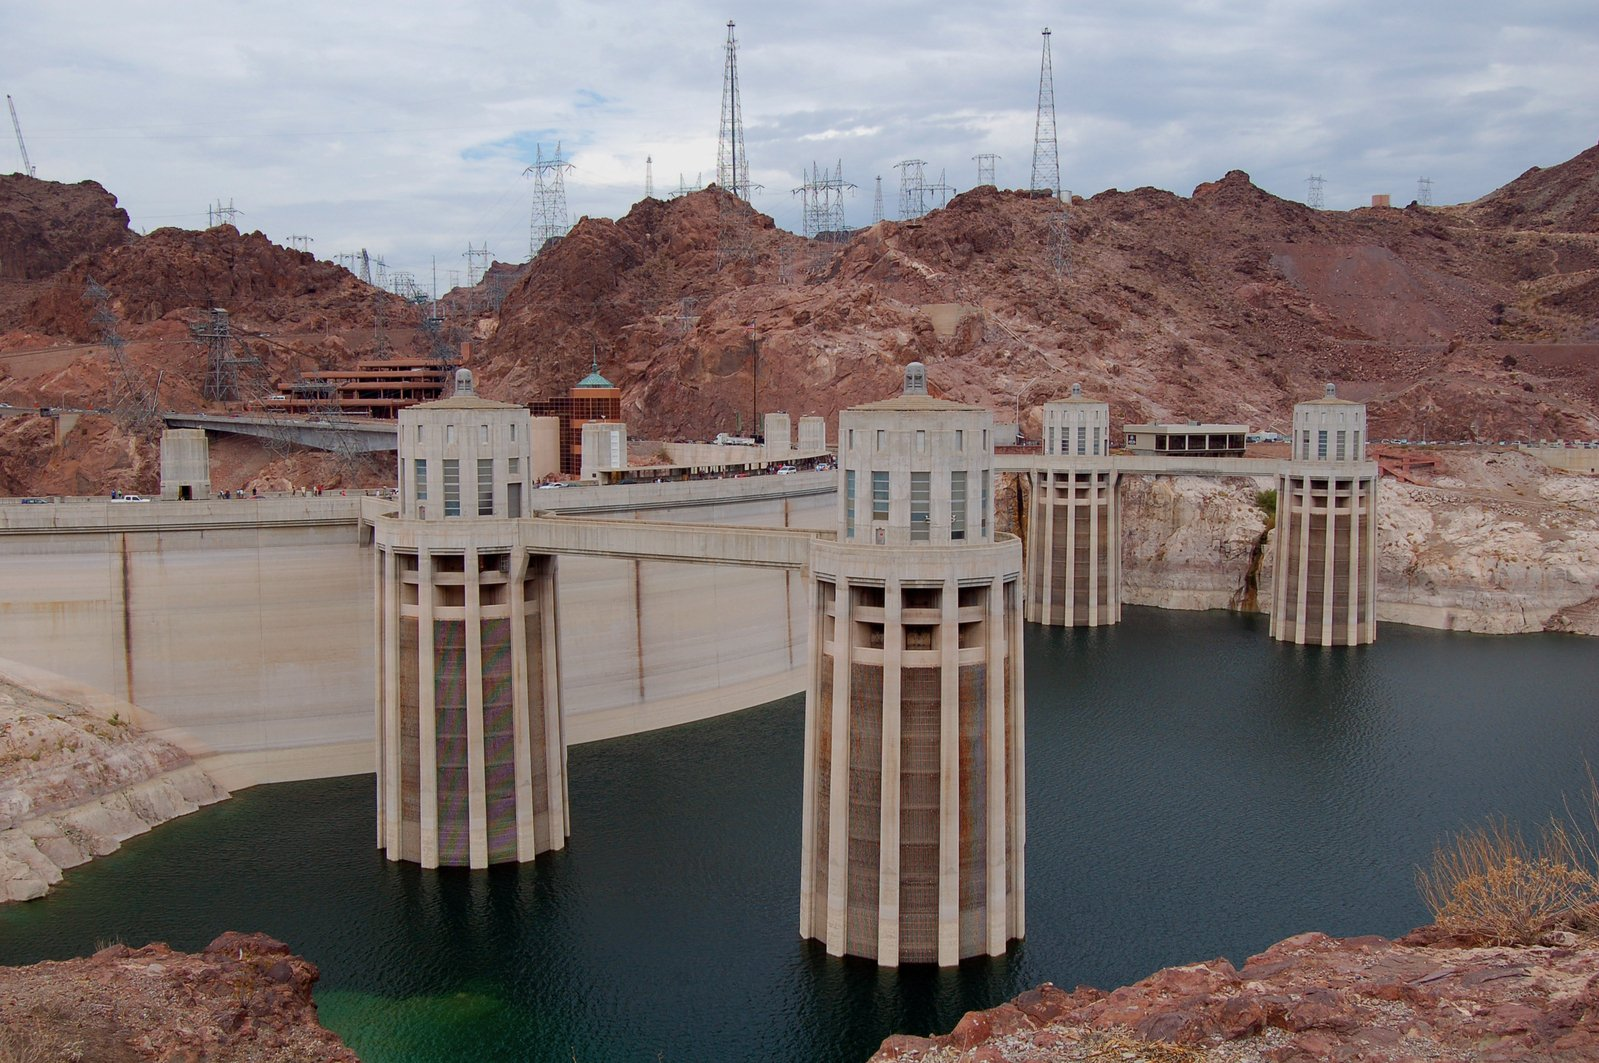 Major Mike | Today in History 09/30 (Hoover Dam) |Hoover Dam Water